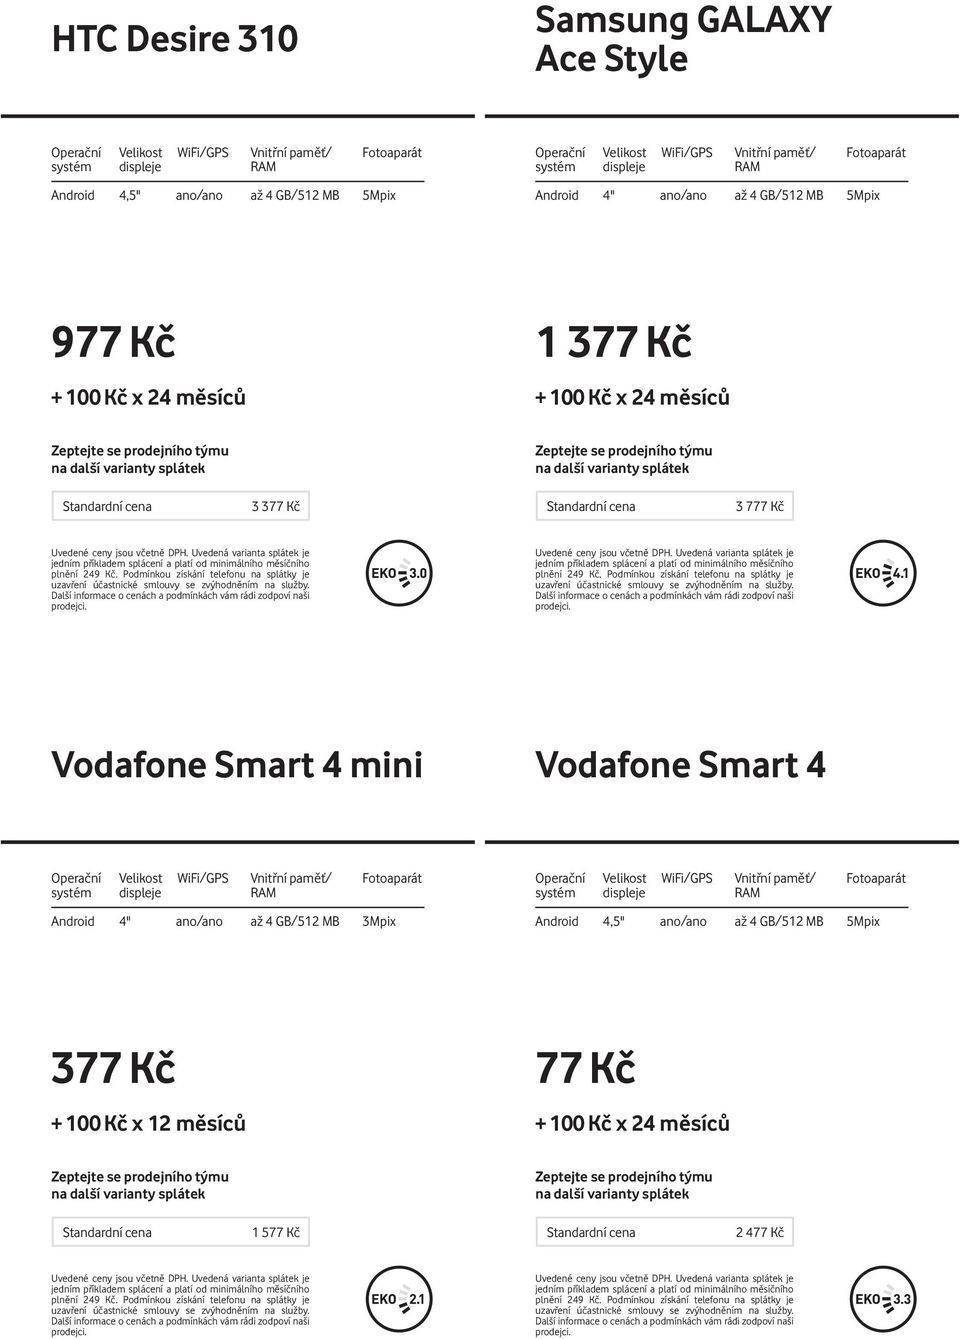 "Vodafone Smart 4 mini Vodafone Smart 4 Android 4"" ano/ano až 4 GB/512"